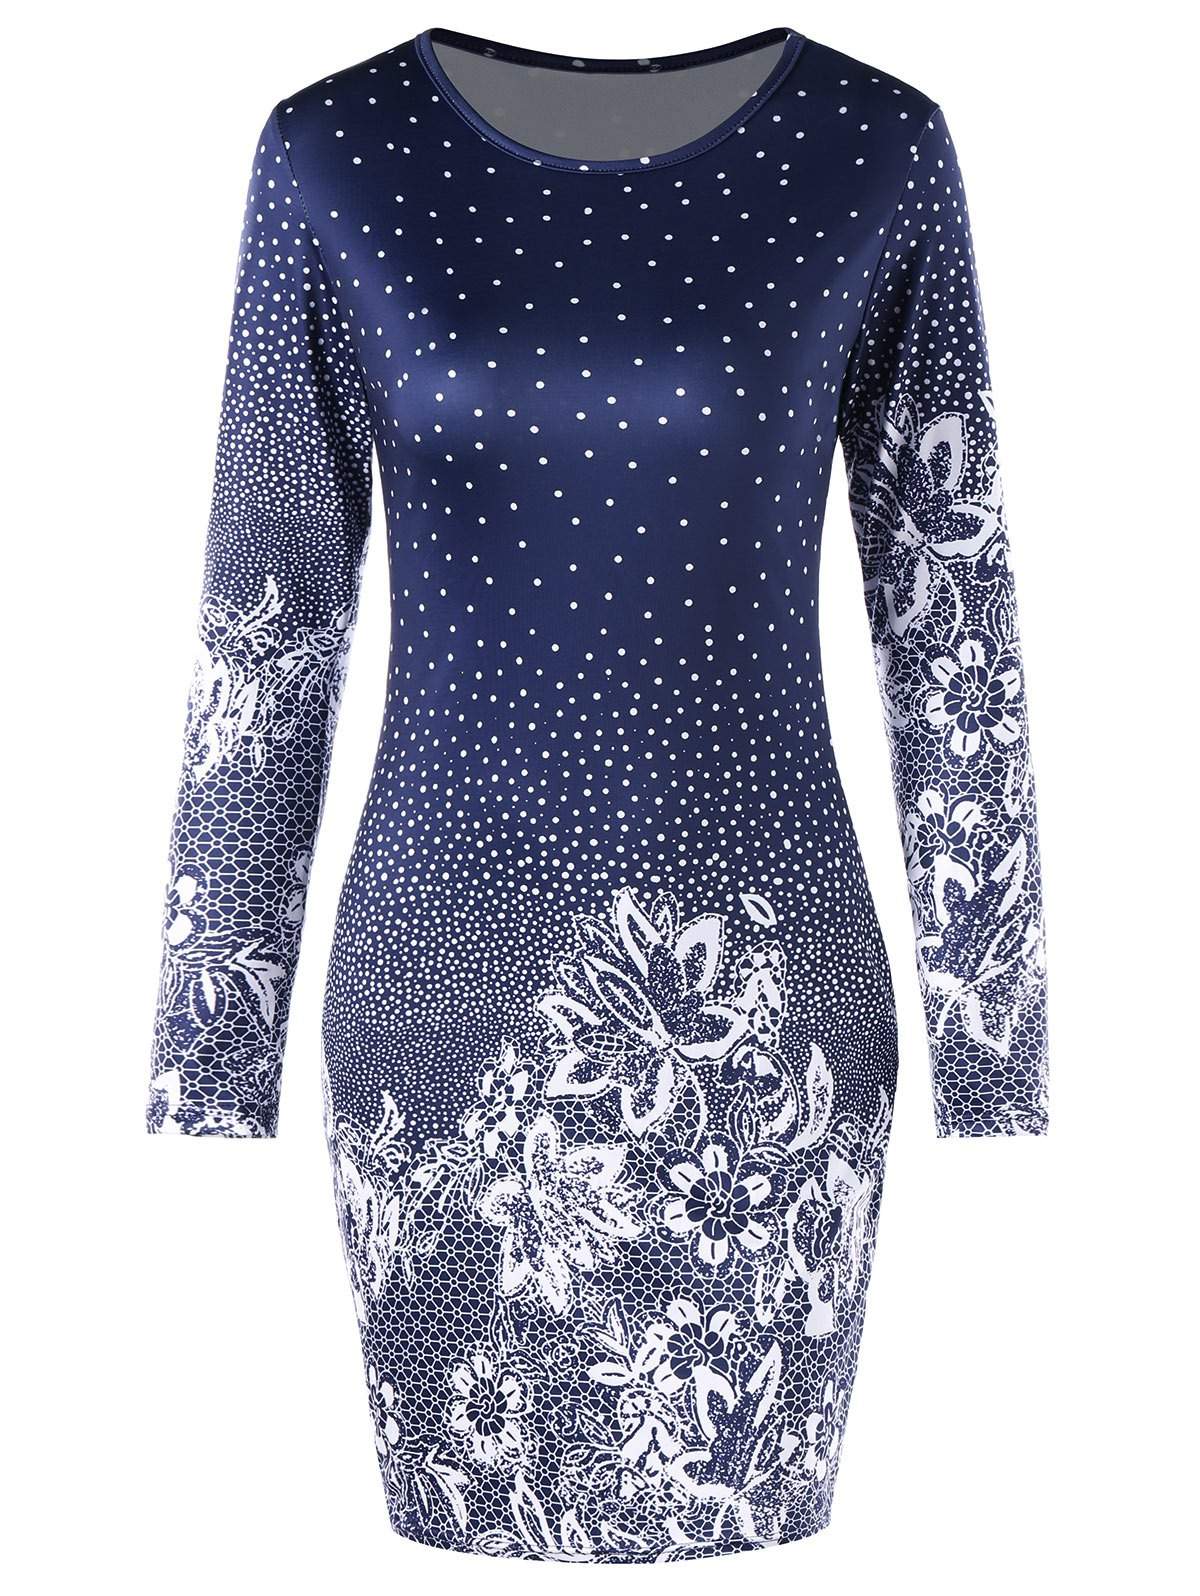 Affordable Floral Polka Dot Bodycon Dress